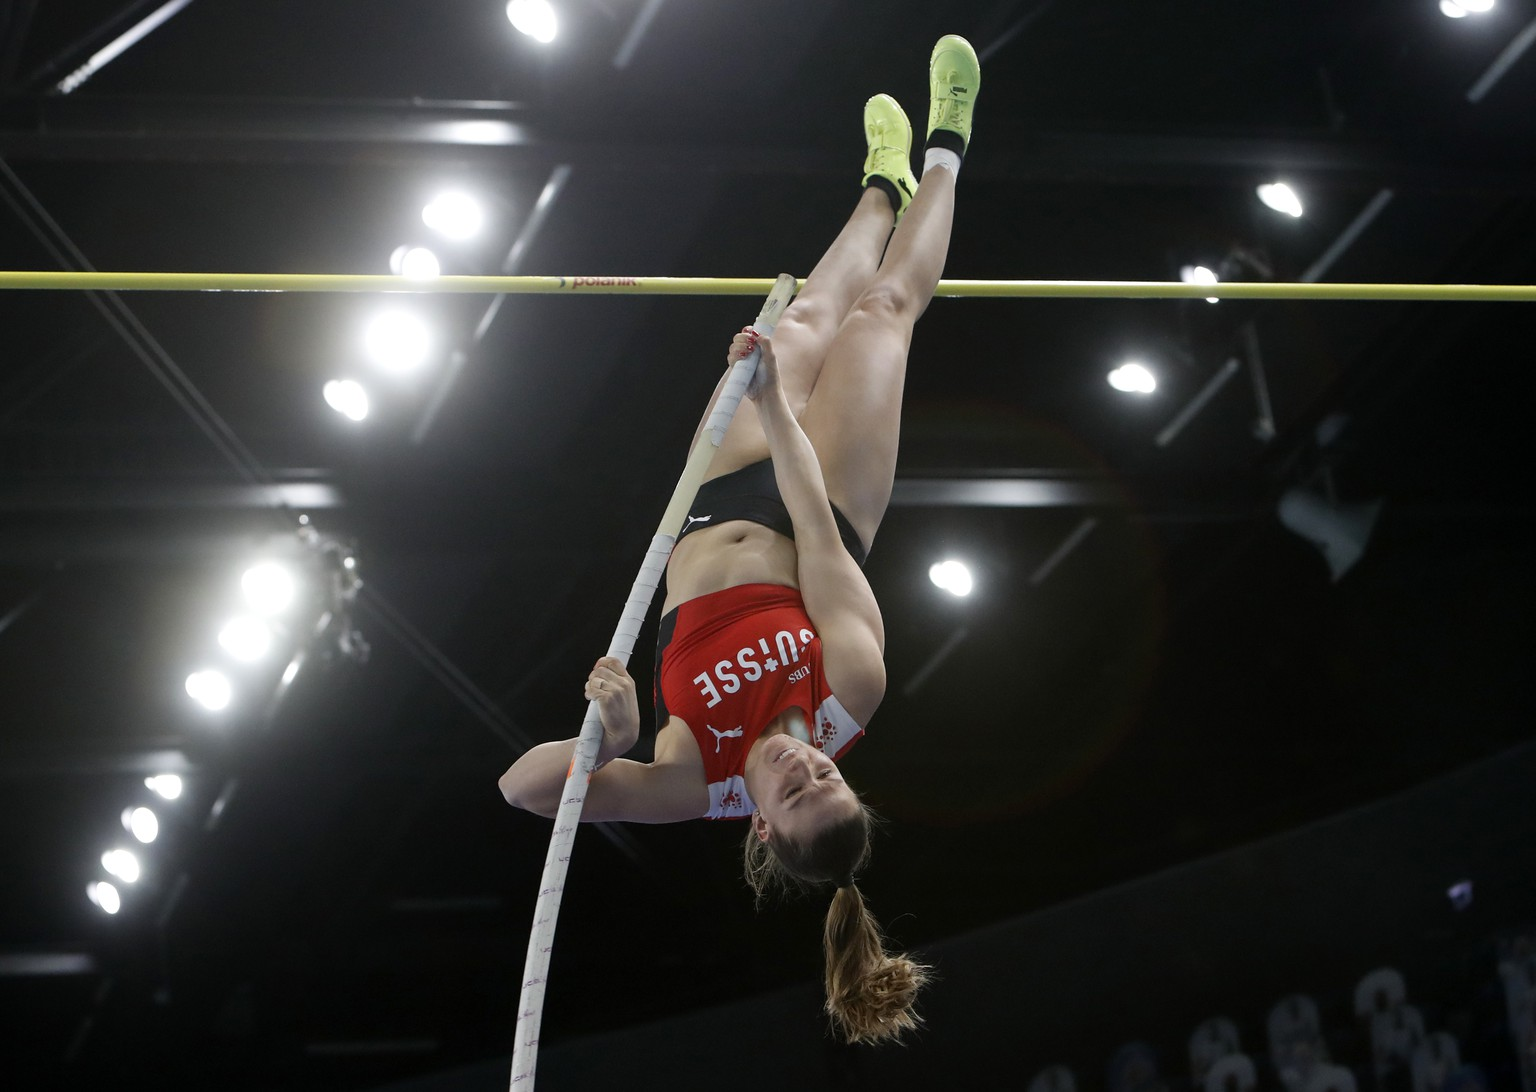 Switzerland's Angelica Moser competes during the women's pole vault final at the Poland European Indoor Athletics Championships in Torun, Poland, Saturday, March 6, 2021. (AP Photo/Darko Vojinovic)